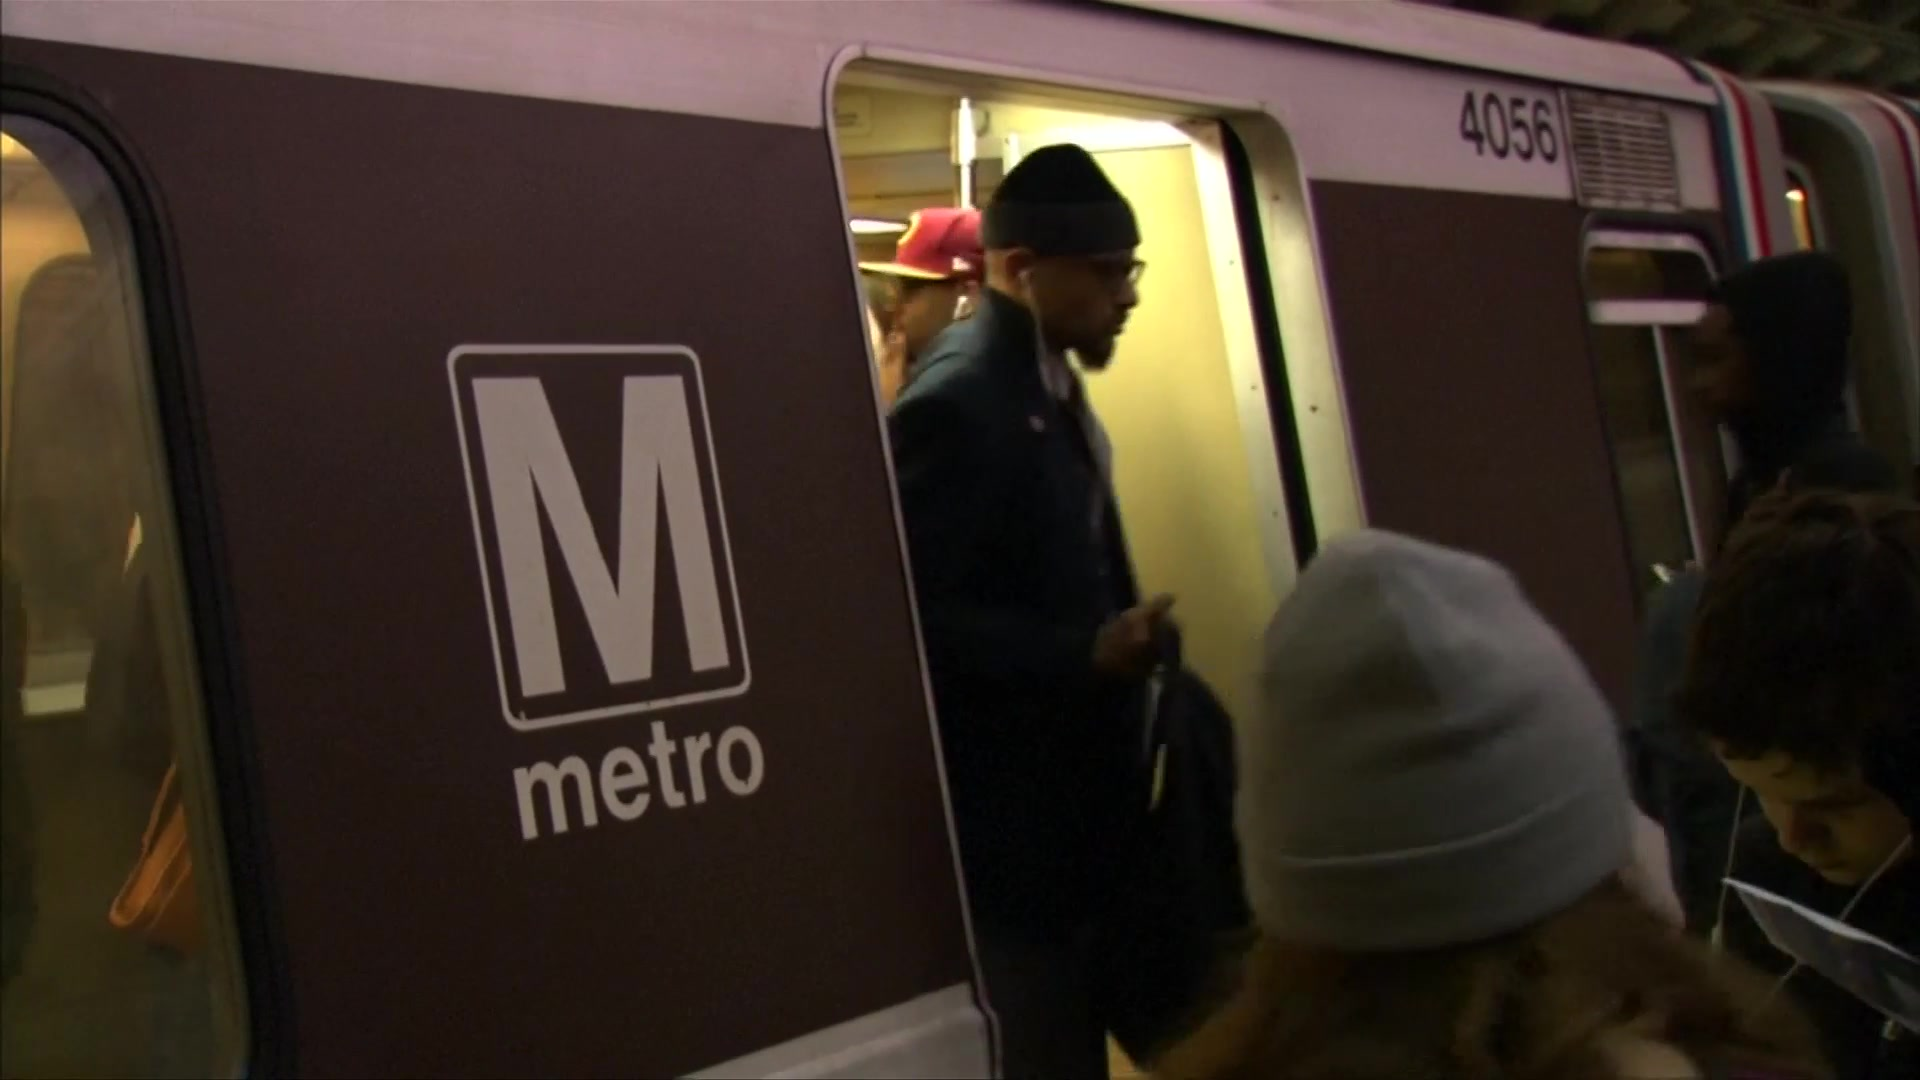 Washington Metro to Shut Down Wednesday for Safety Checks